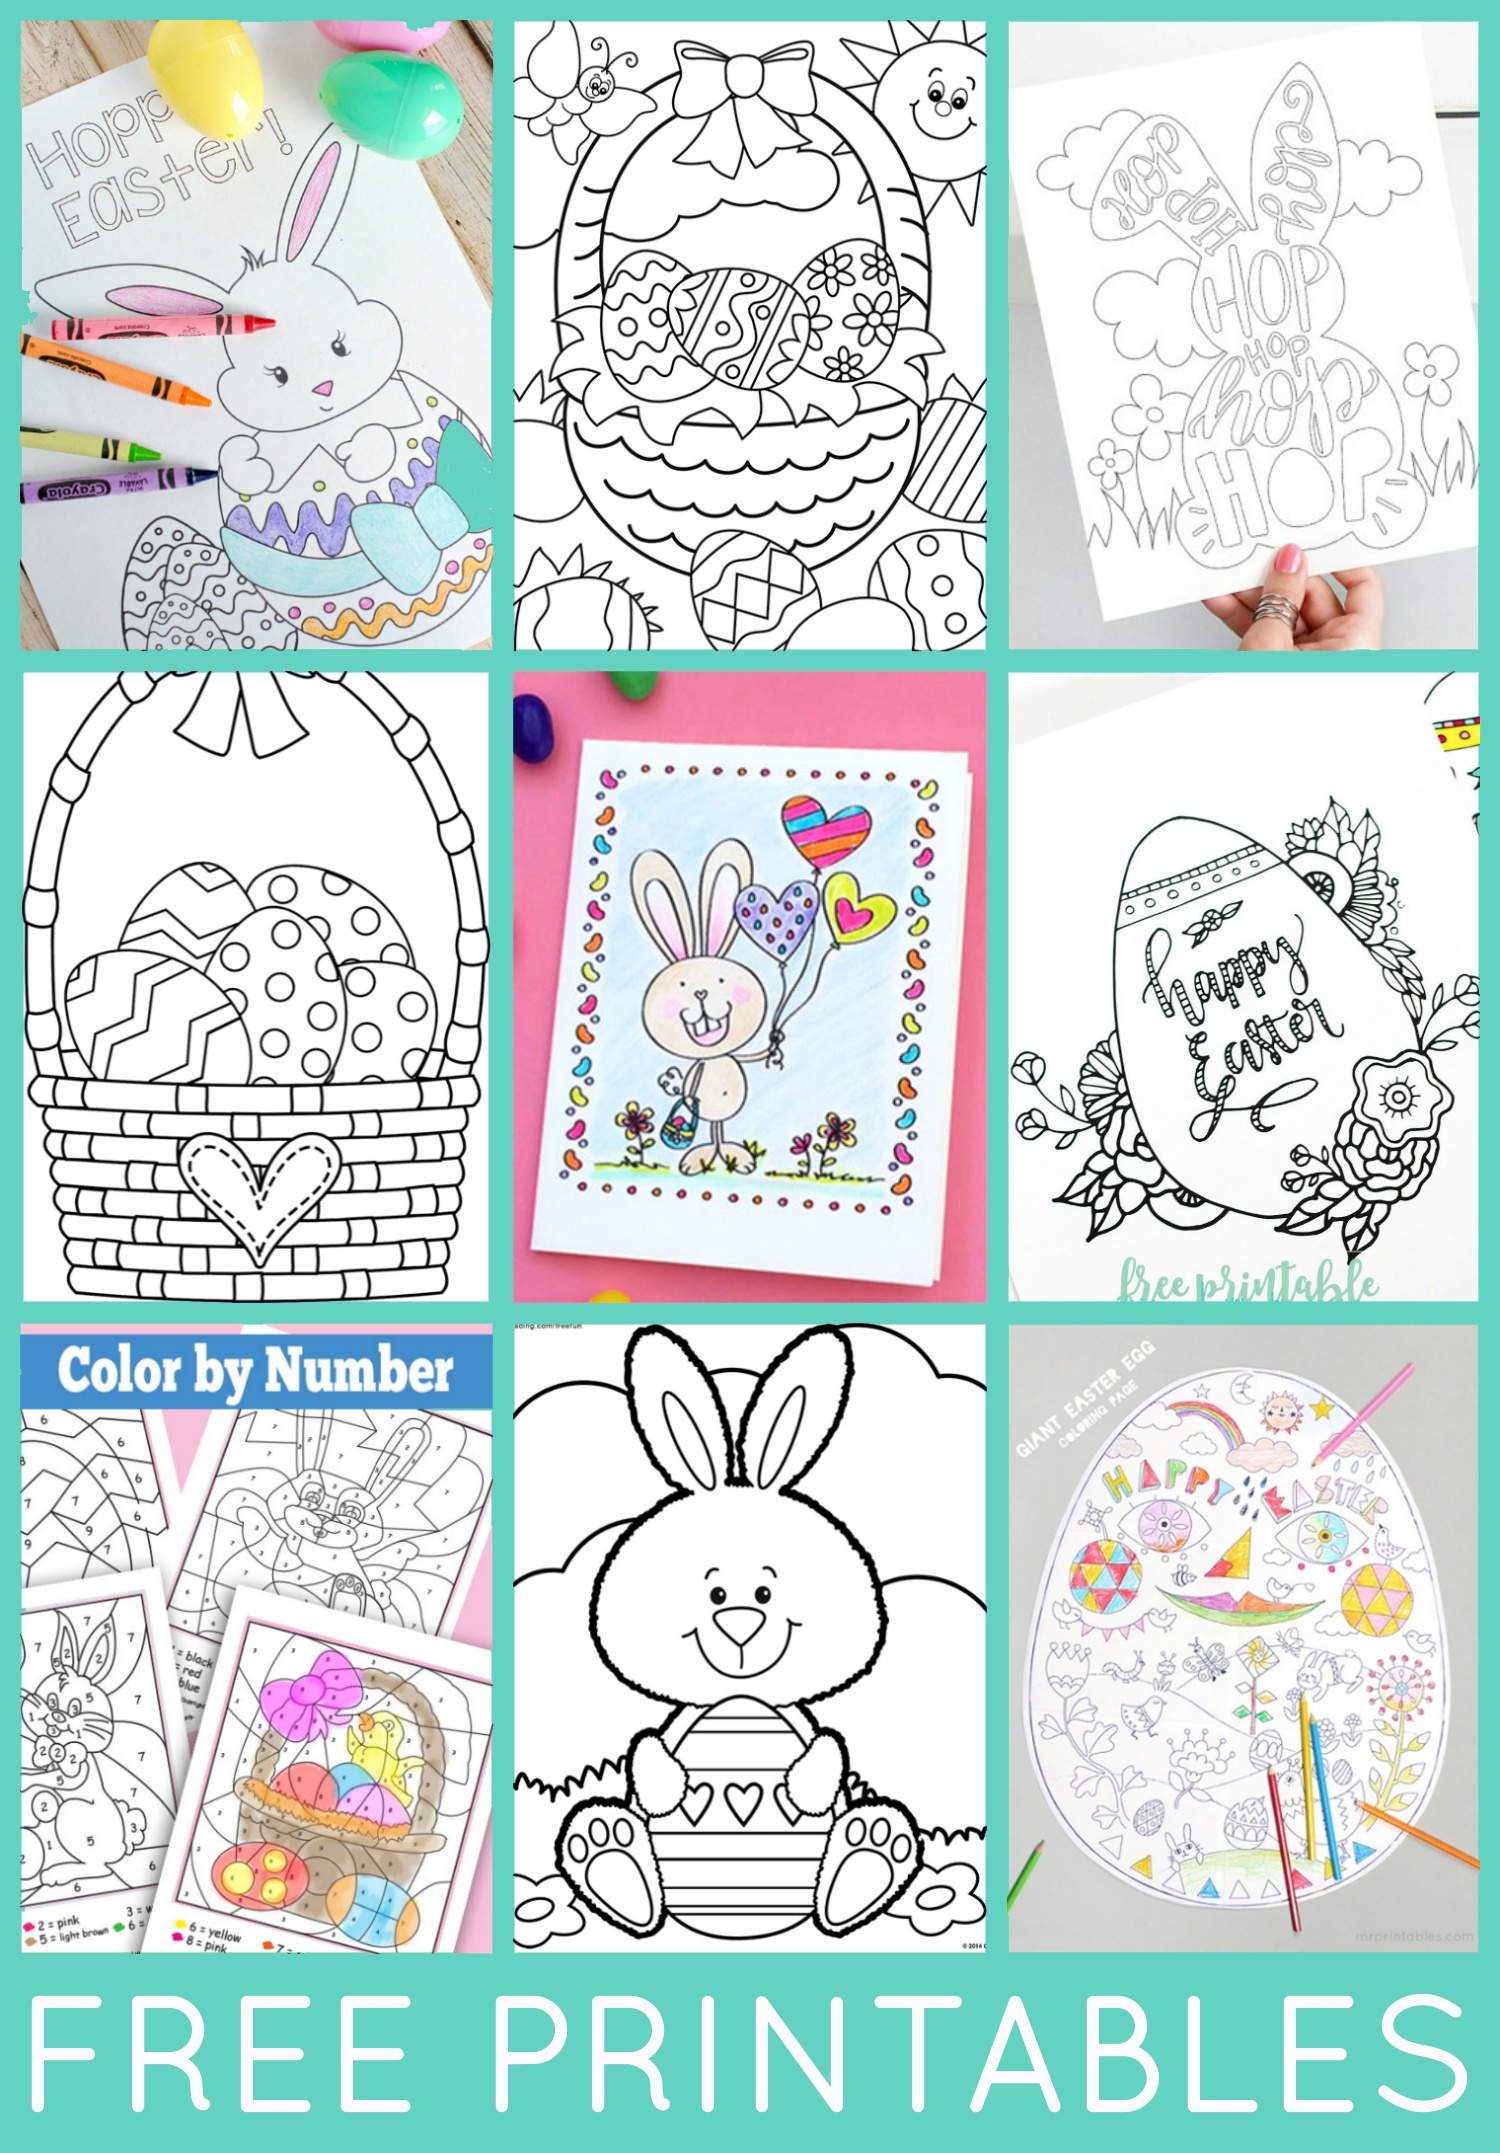 Free Easter Coloring Pages - Happiness Is Homemade - Free Printable Easter Images